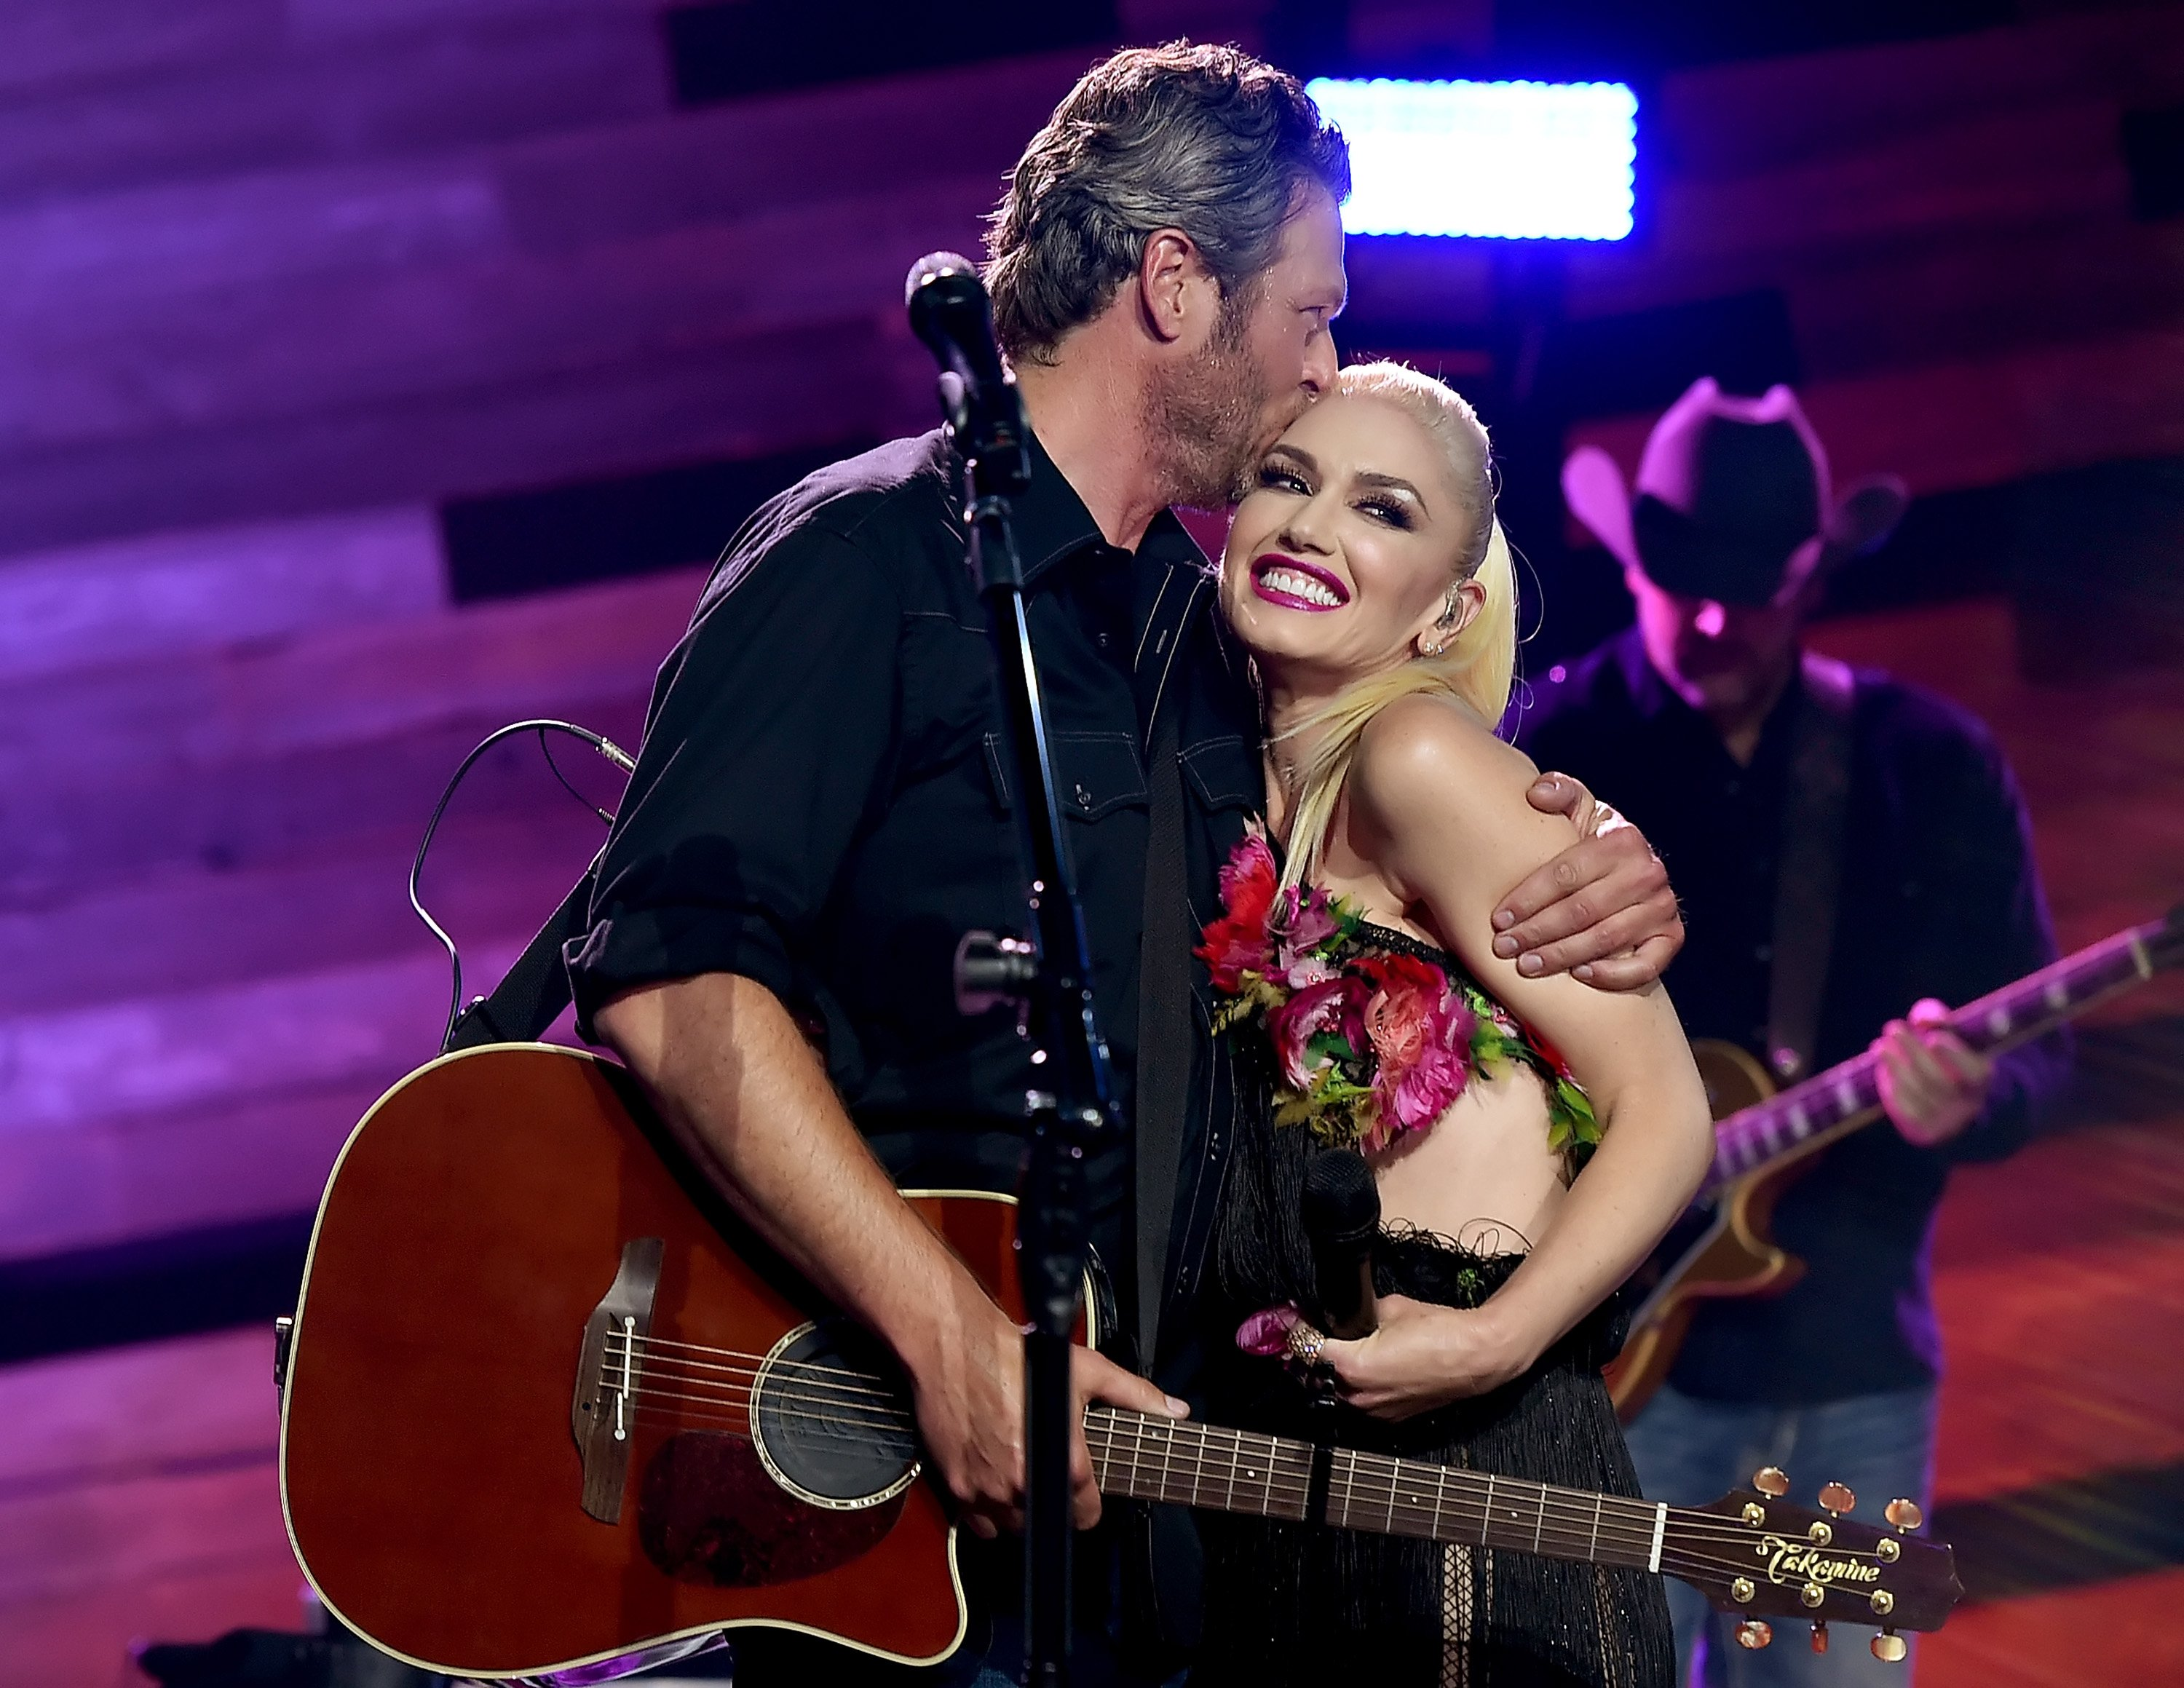 Blake Shelton and Gwen Stefani on the Honda Stage at the iHeartRadio Theater on May 9, 2016 | Source: Getty Images